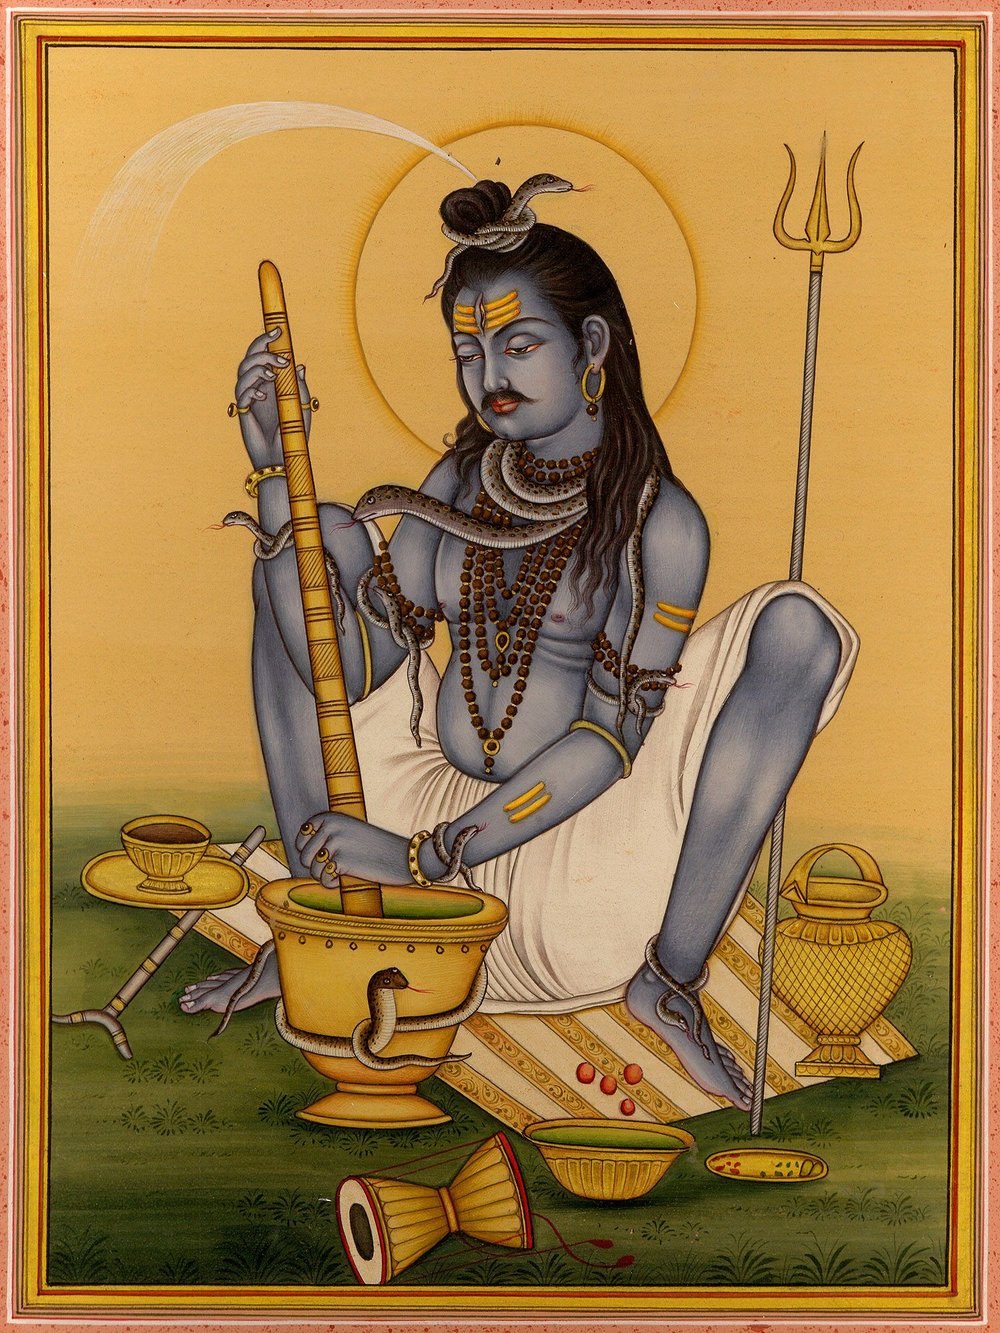 Shiva grinding fine herbs has a spiritual practice to make his Bhang.